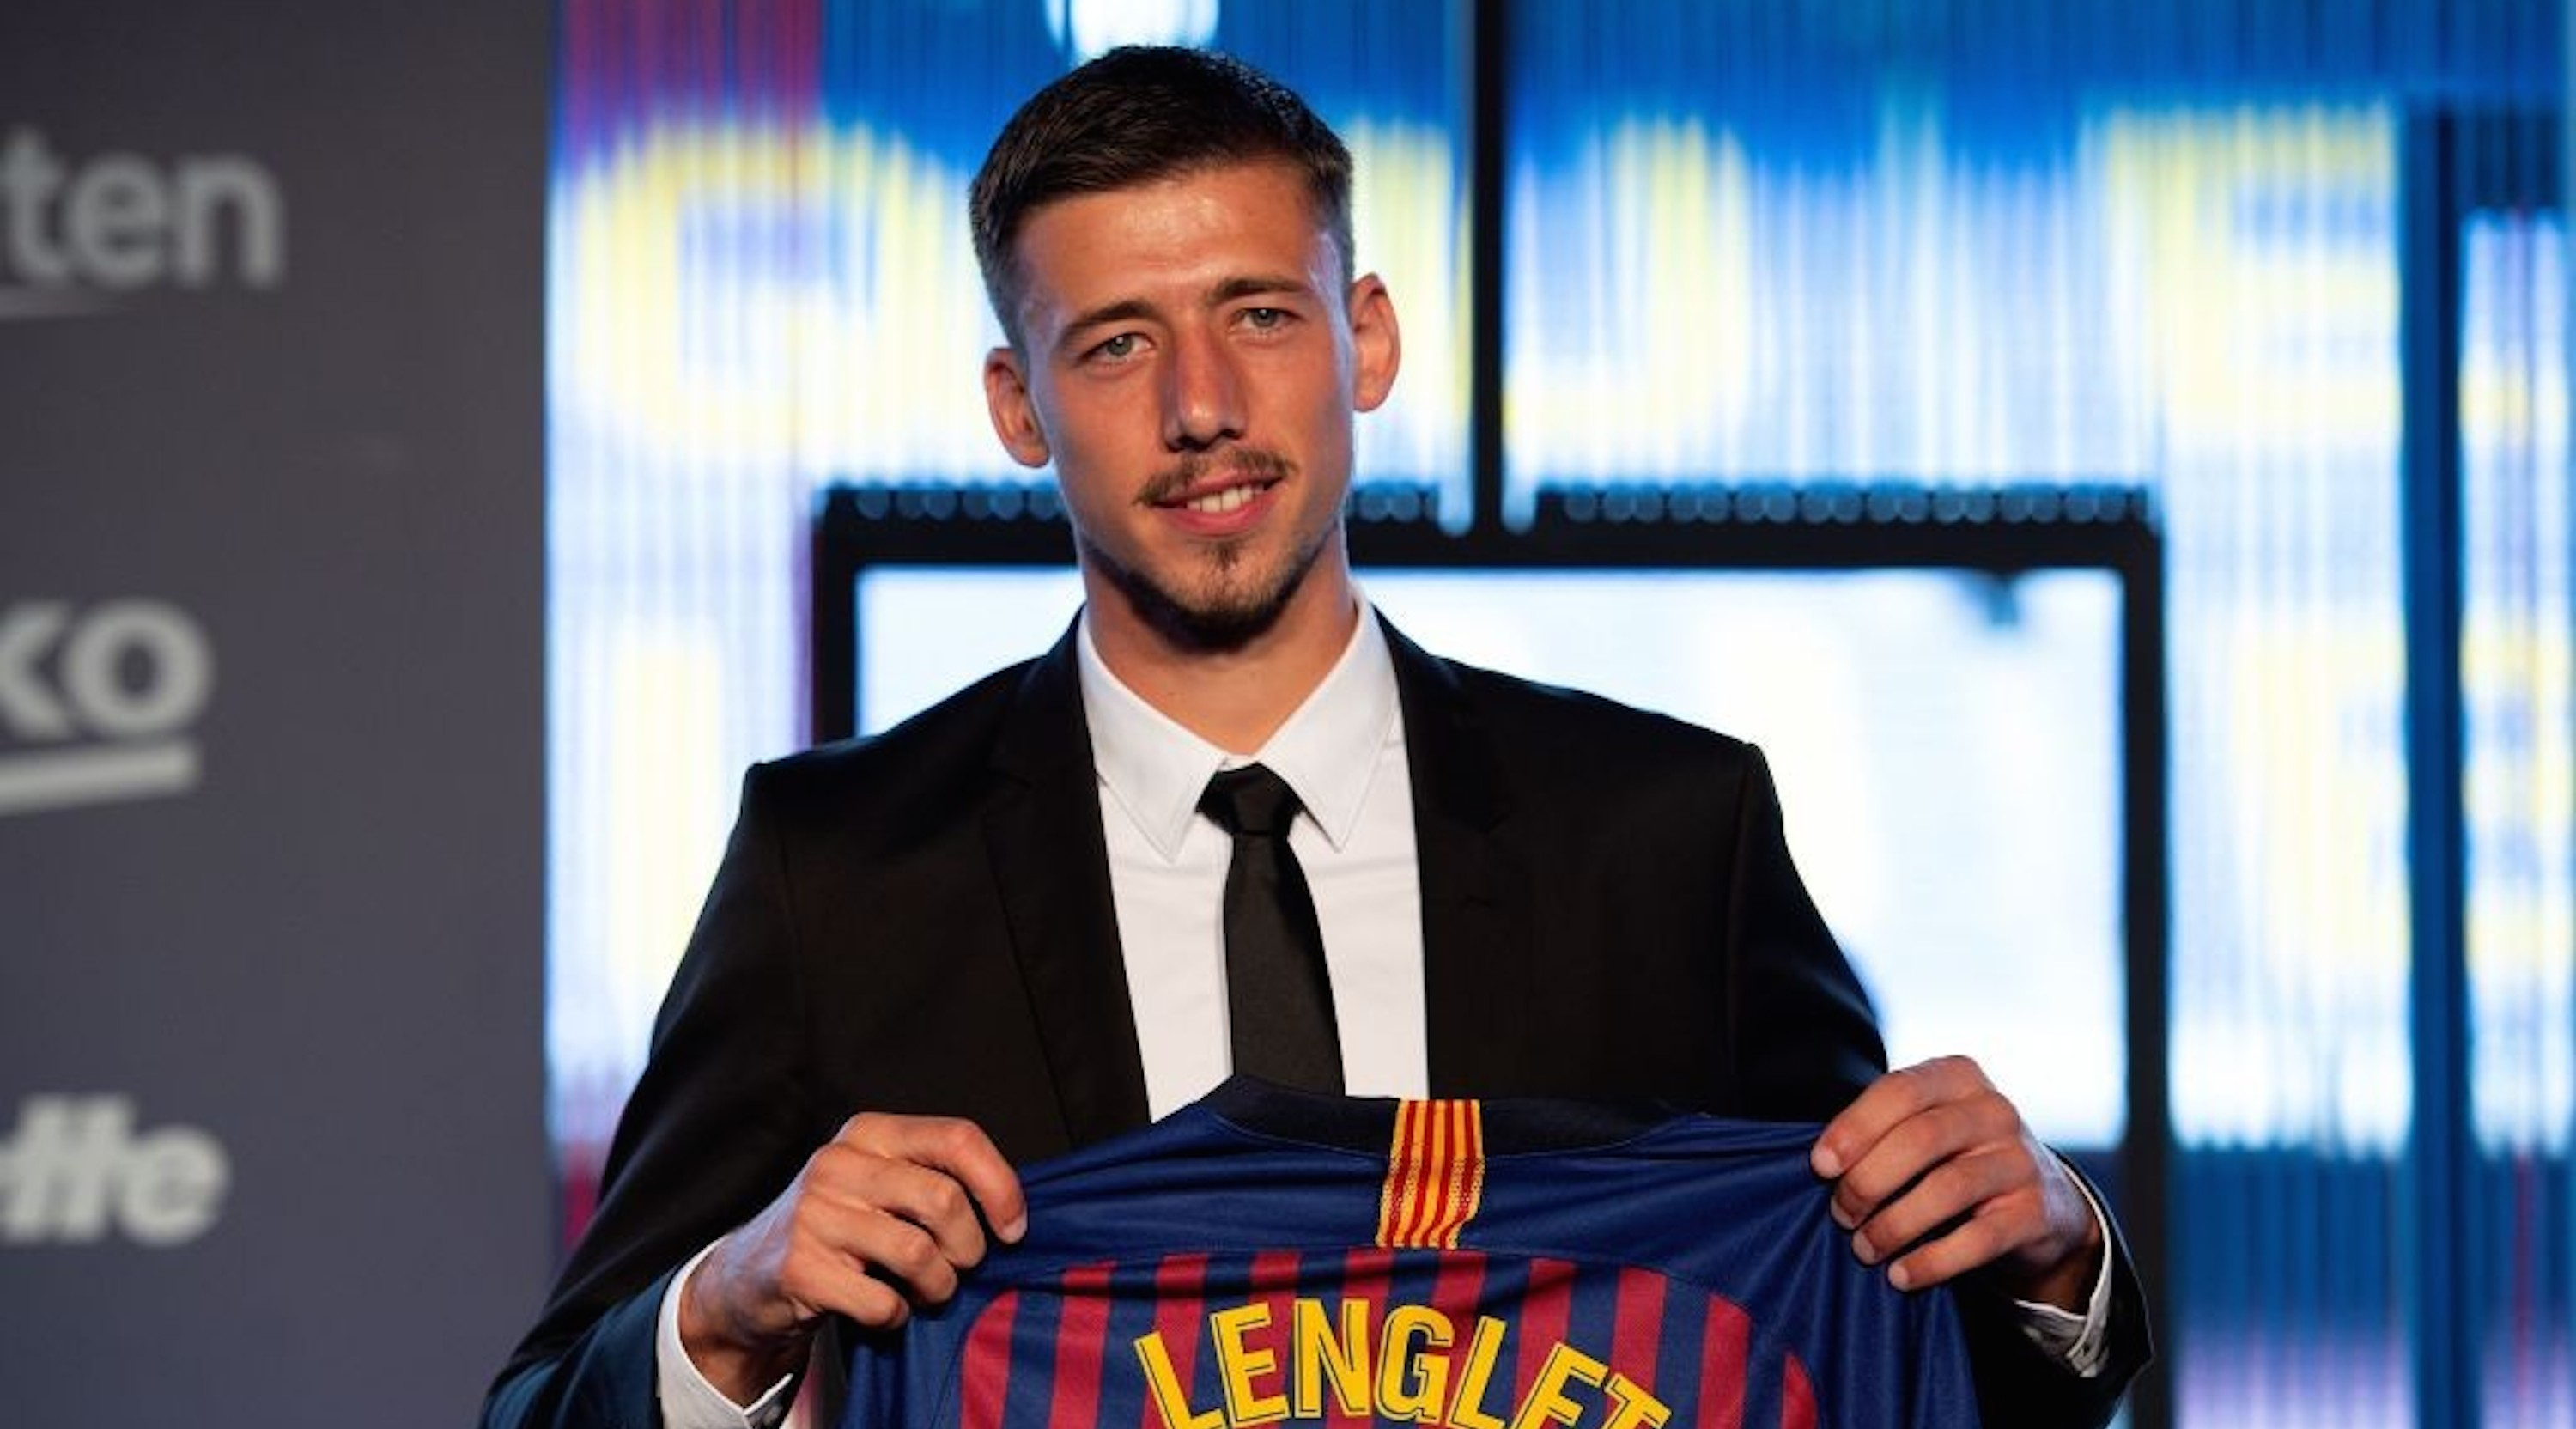 Barcelona«'s new player French defender Clement Lenglet poses with his new jersey during his official presentation at the Camp Nou stadium in Barcelona on July 13, 2018. - Clement Lenglet will join up with compatriots Samuel Umtiti and Ousmane Dembele at Barcelona in a transfer from La Liga rivals Sevilla worth 35.9 million euros ($42 million), the club said. The 23-year-old has signed a five-year contract with a buyout clause valued at 300 million euros, it added. (Photo by Josep LAGO / AFP) (Photo credit should read JOSEP LAGO/AFP/Getty Images)